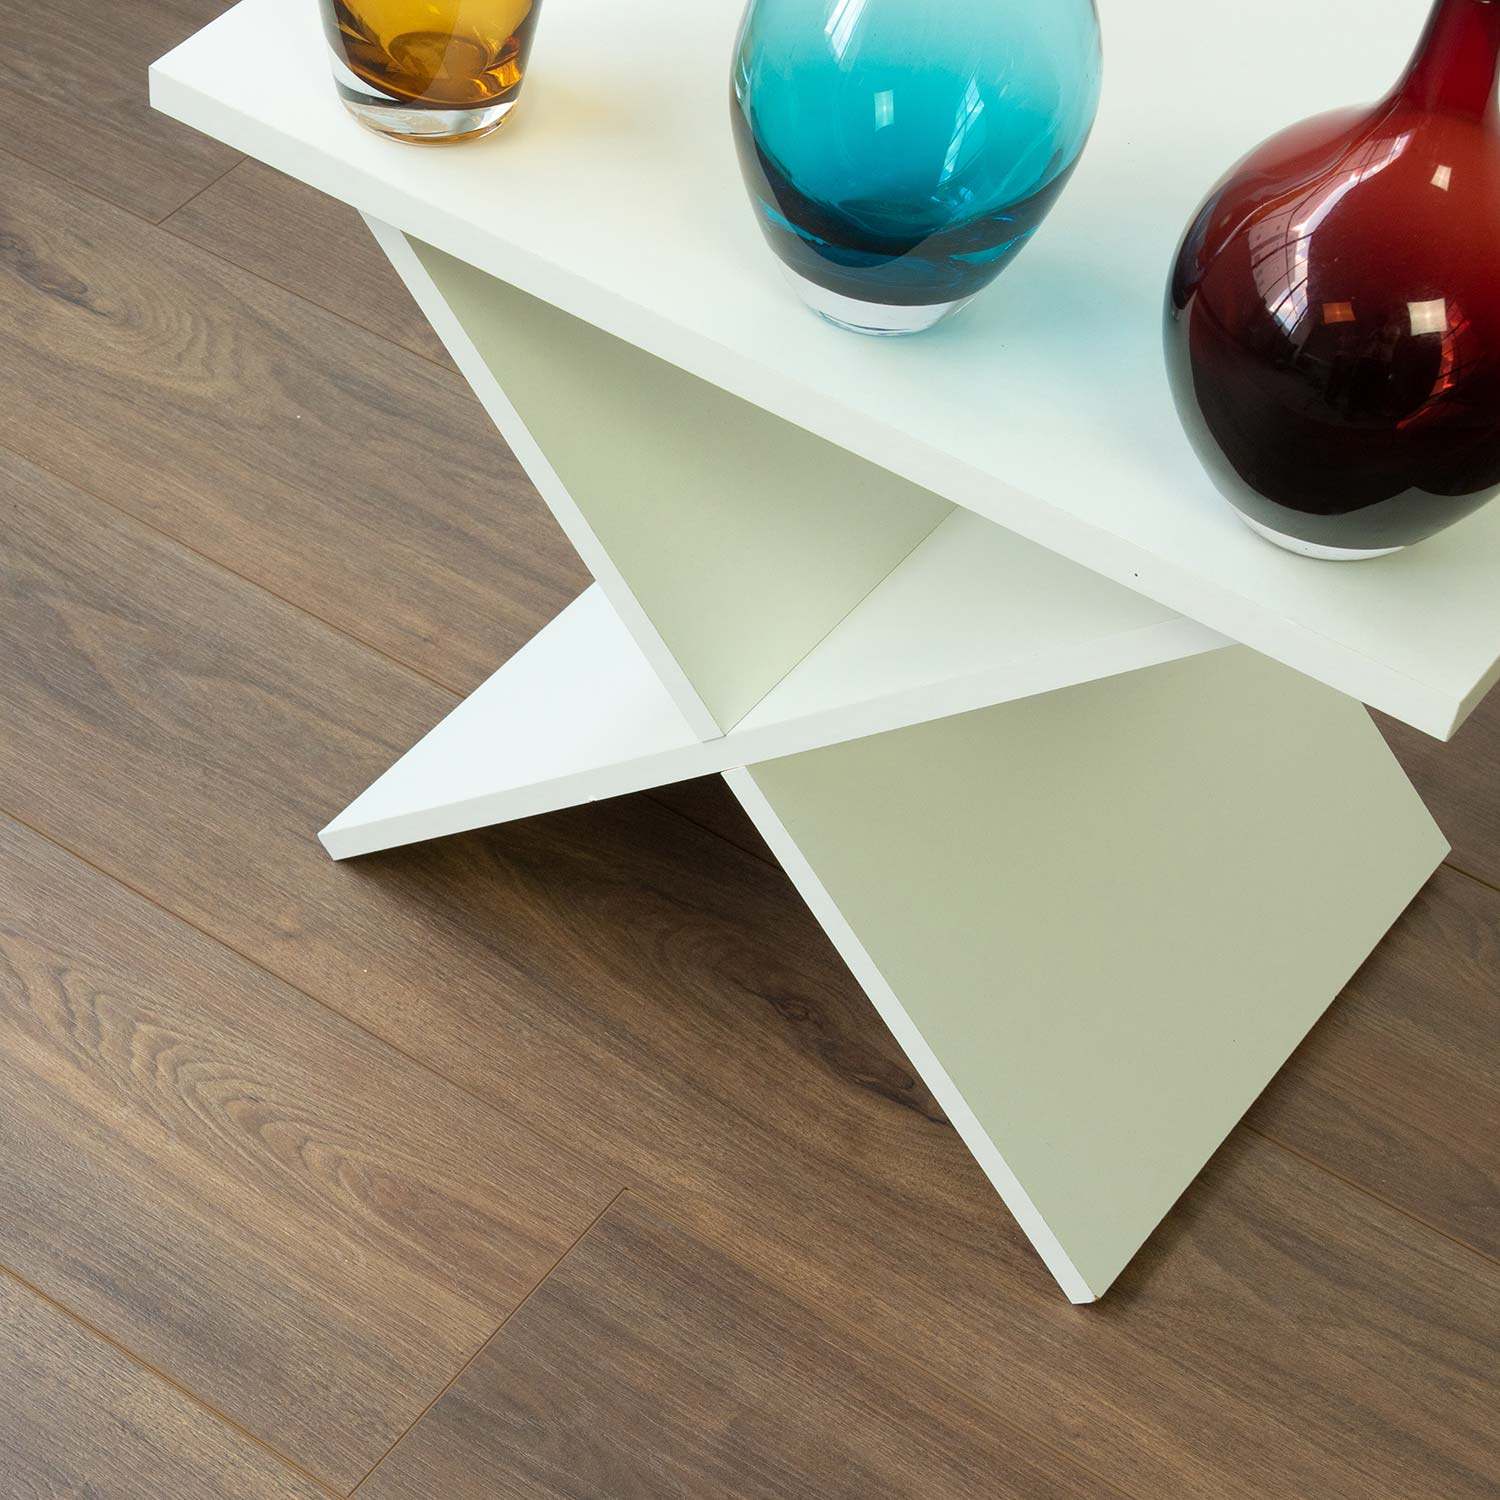 Smoked Walnut Laminate | AC5 12mm